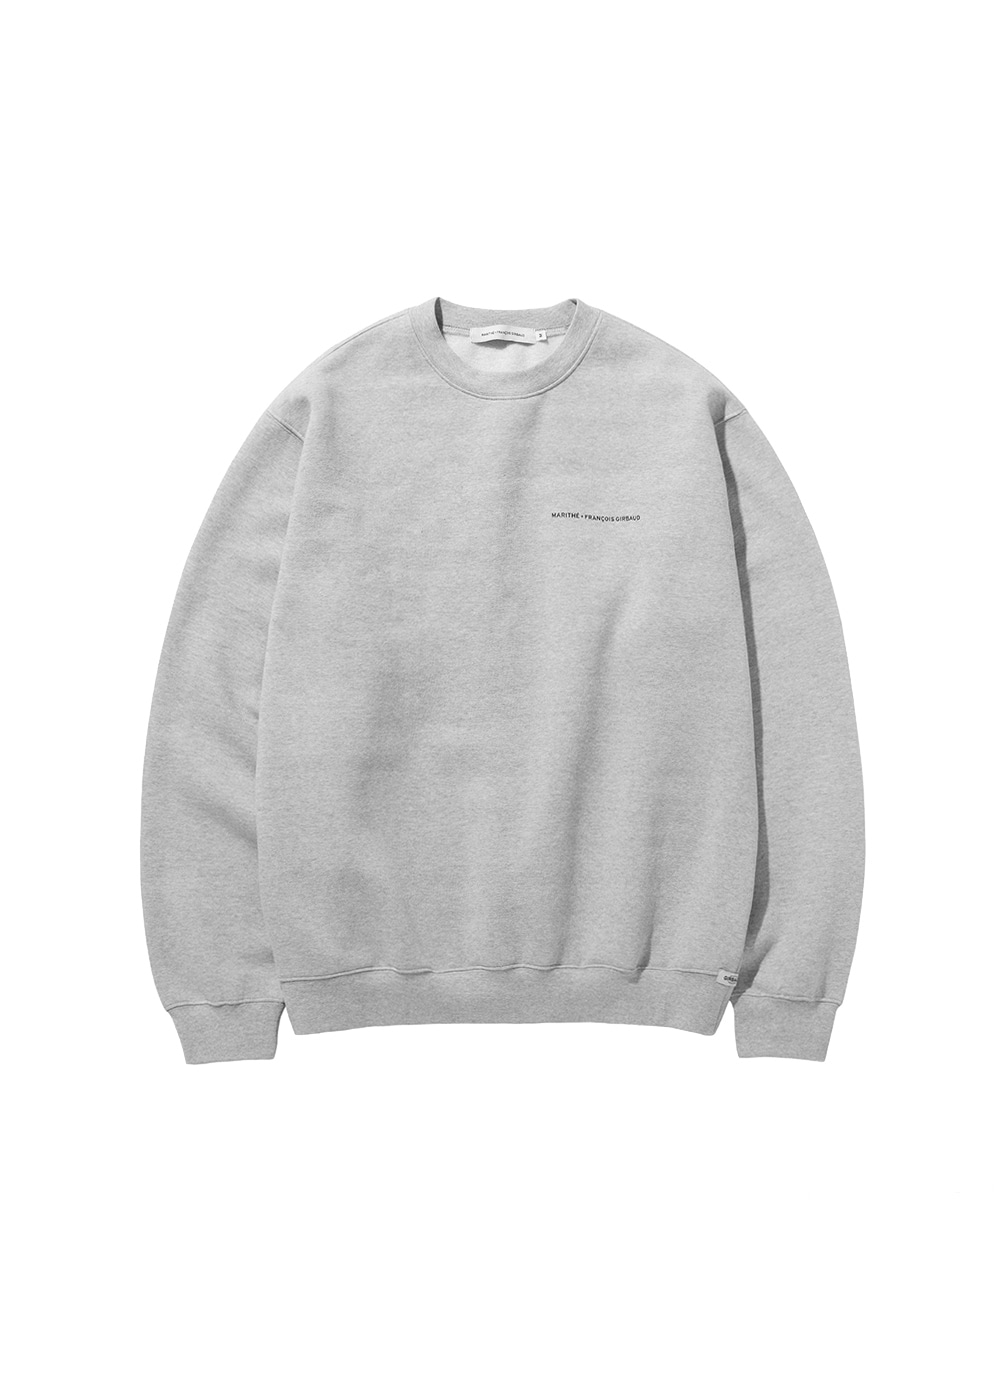 MFG NAME LOGO SWEATSHIRT heather gray